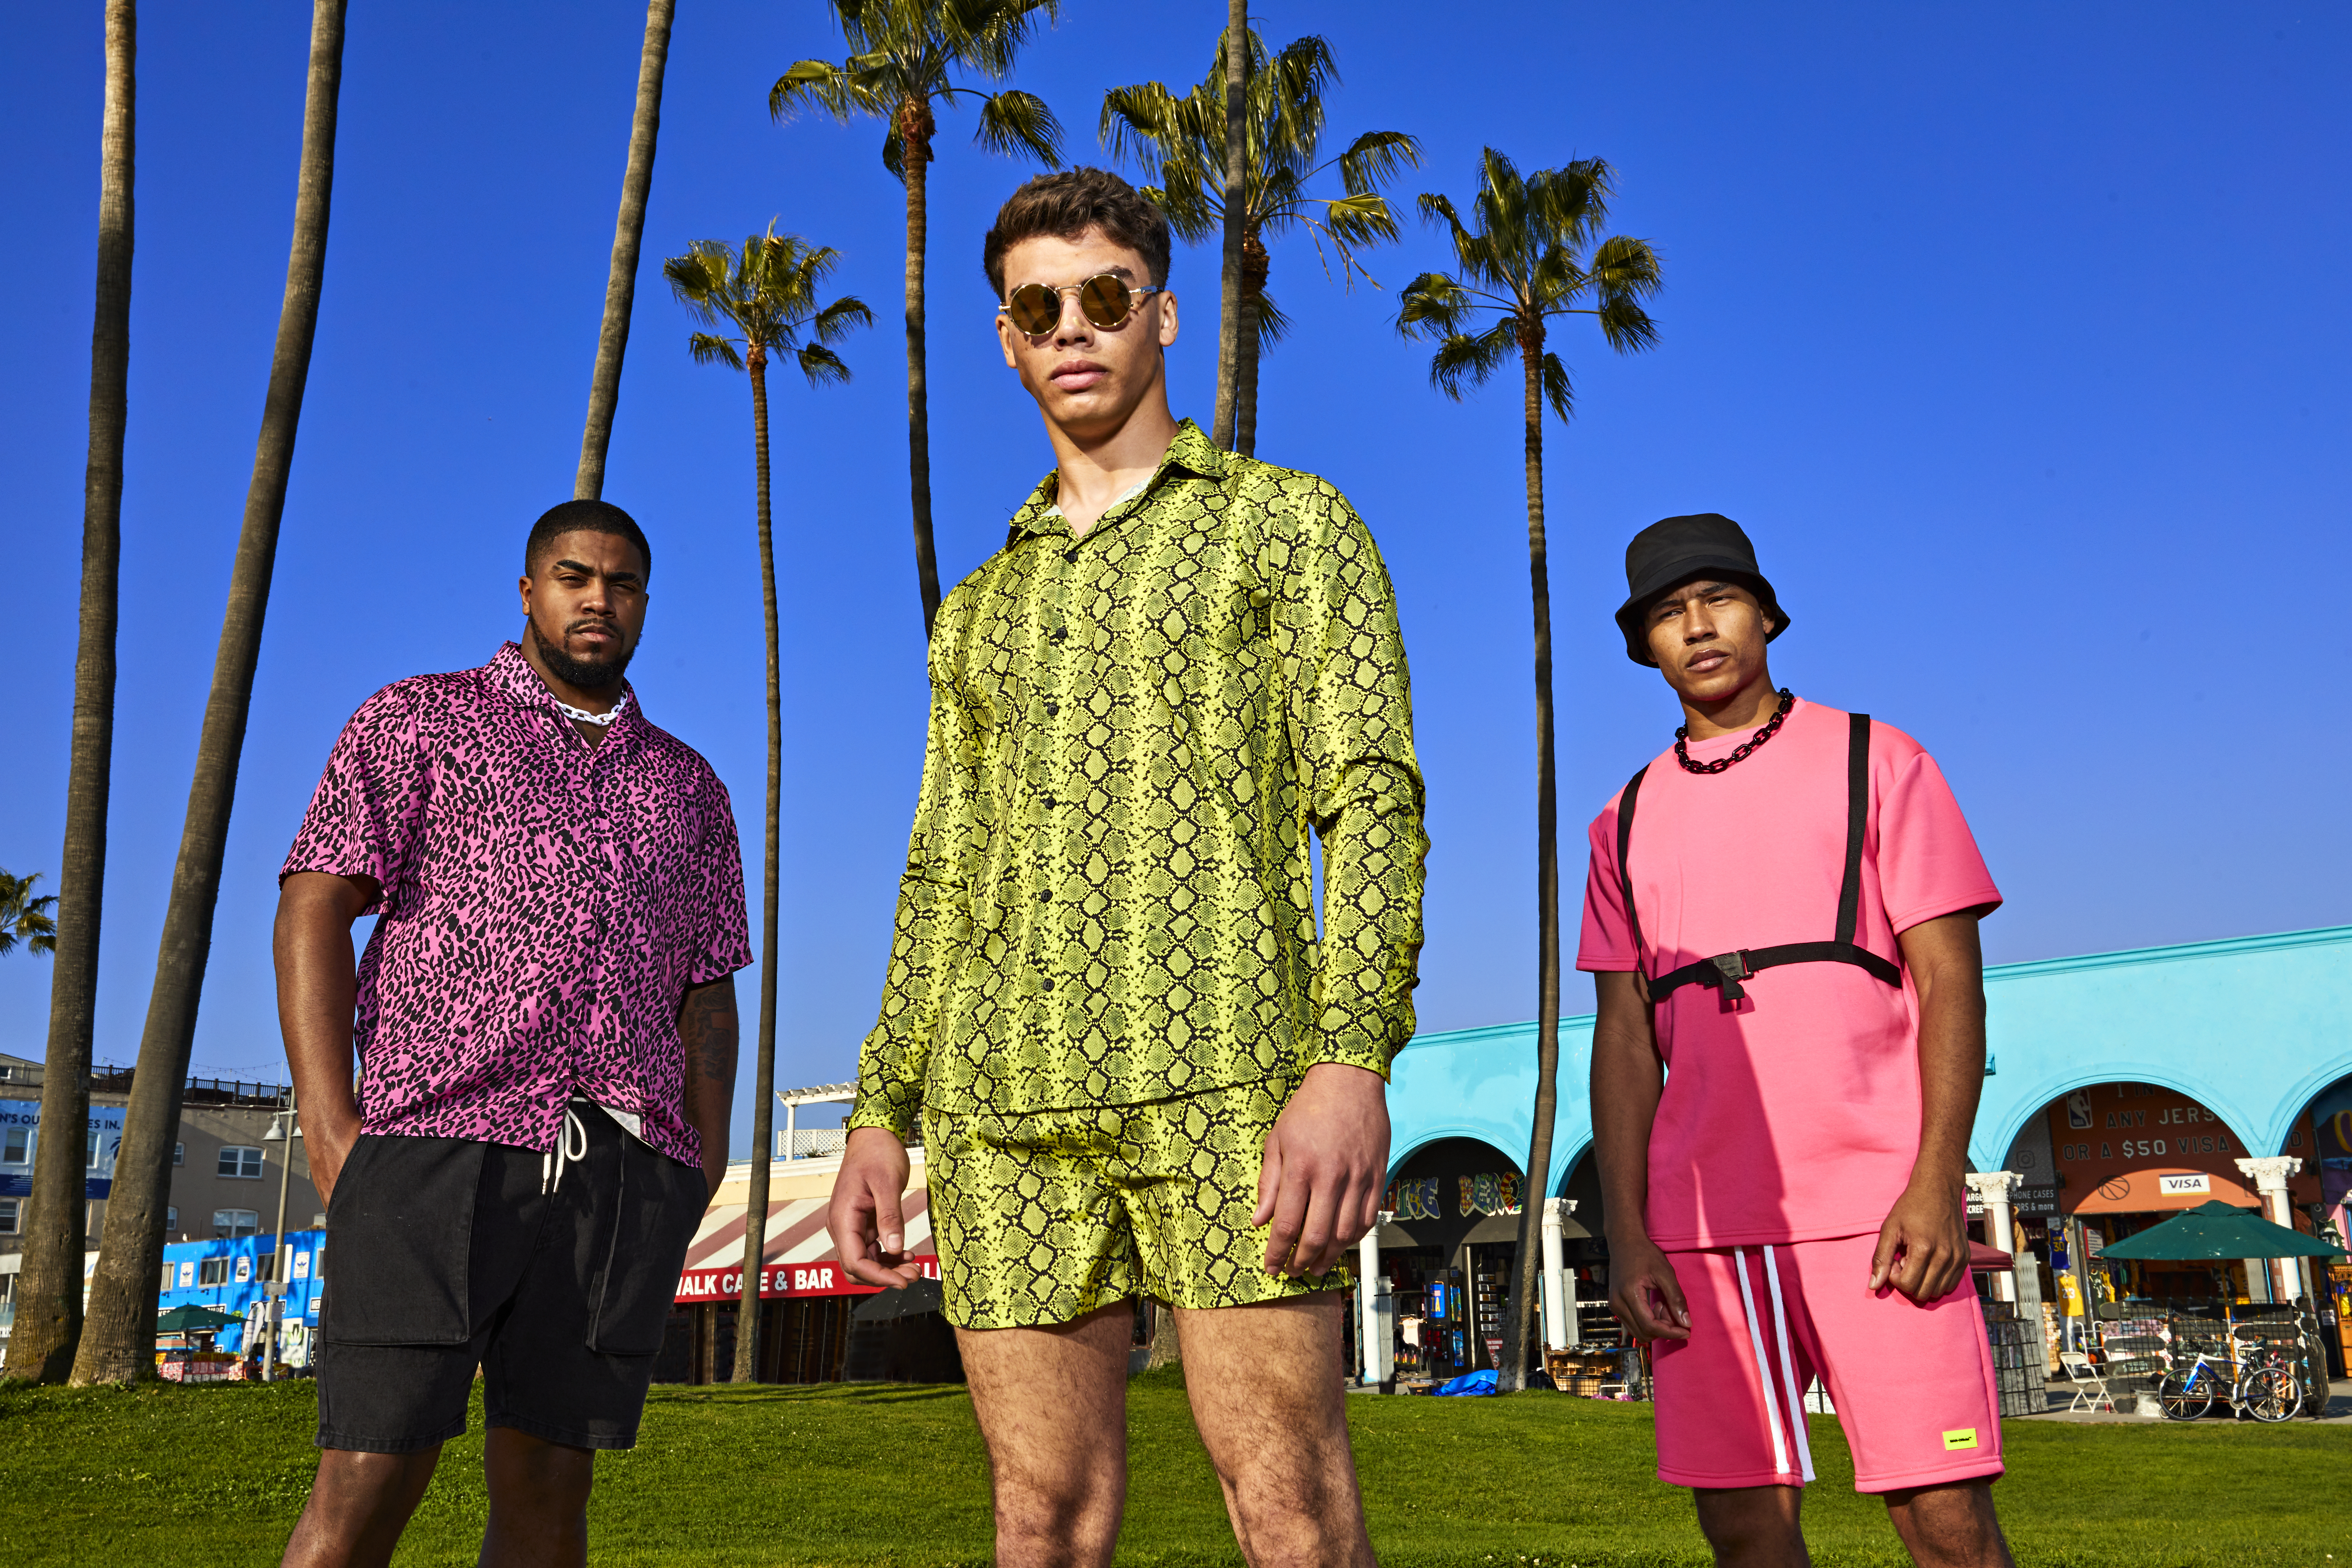 What to Wear on Spring Break 2020 for Guys? Top 5 Essentials to Create the Ultimate Spring Break Outfit for Guys